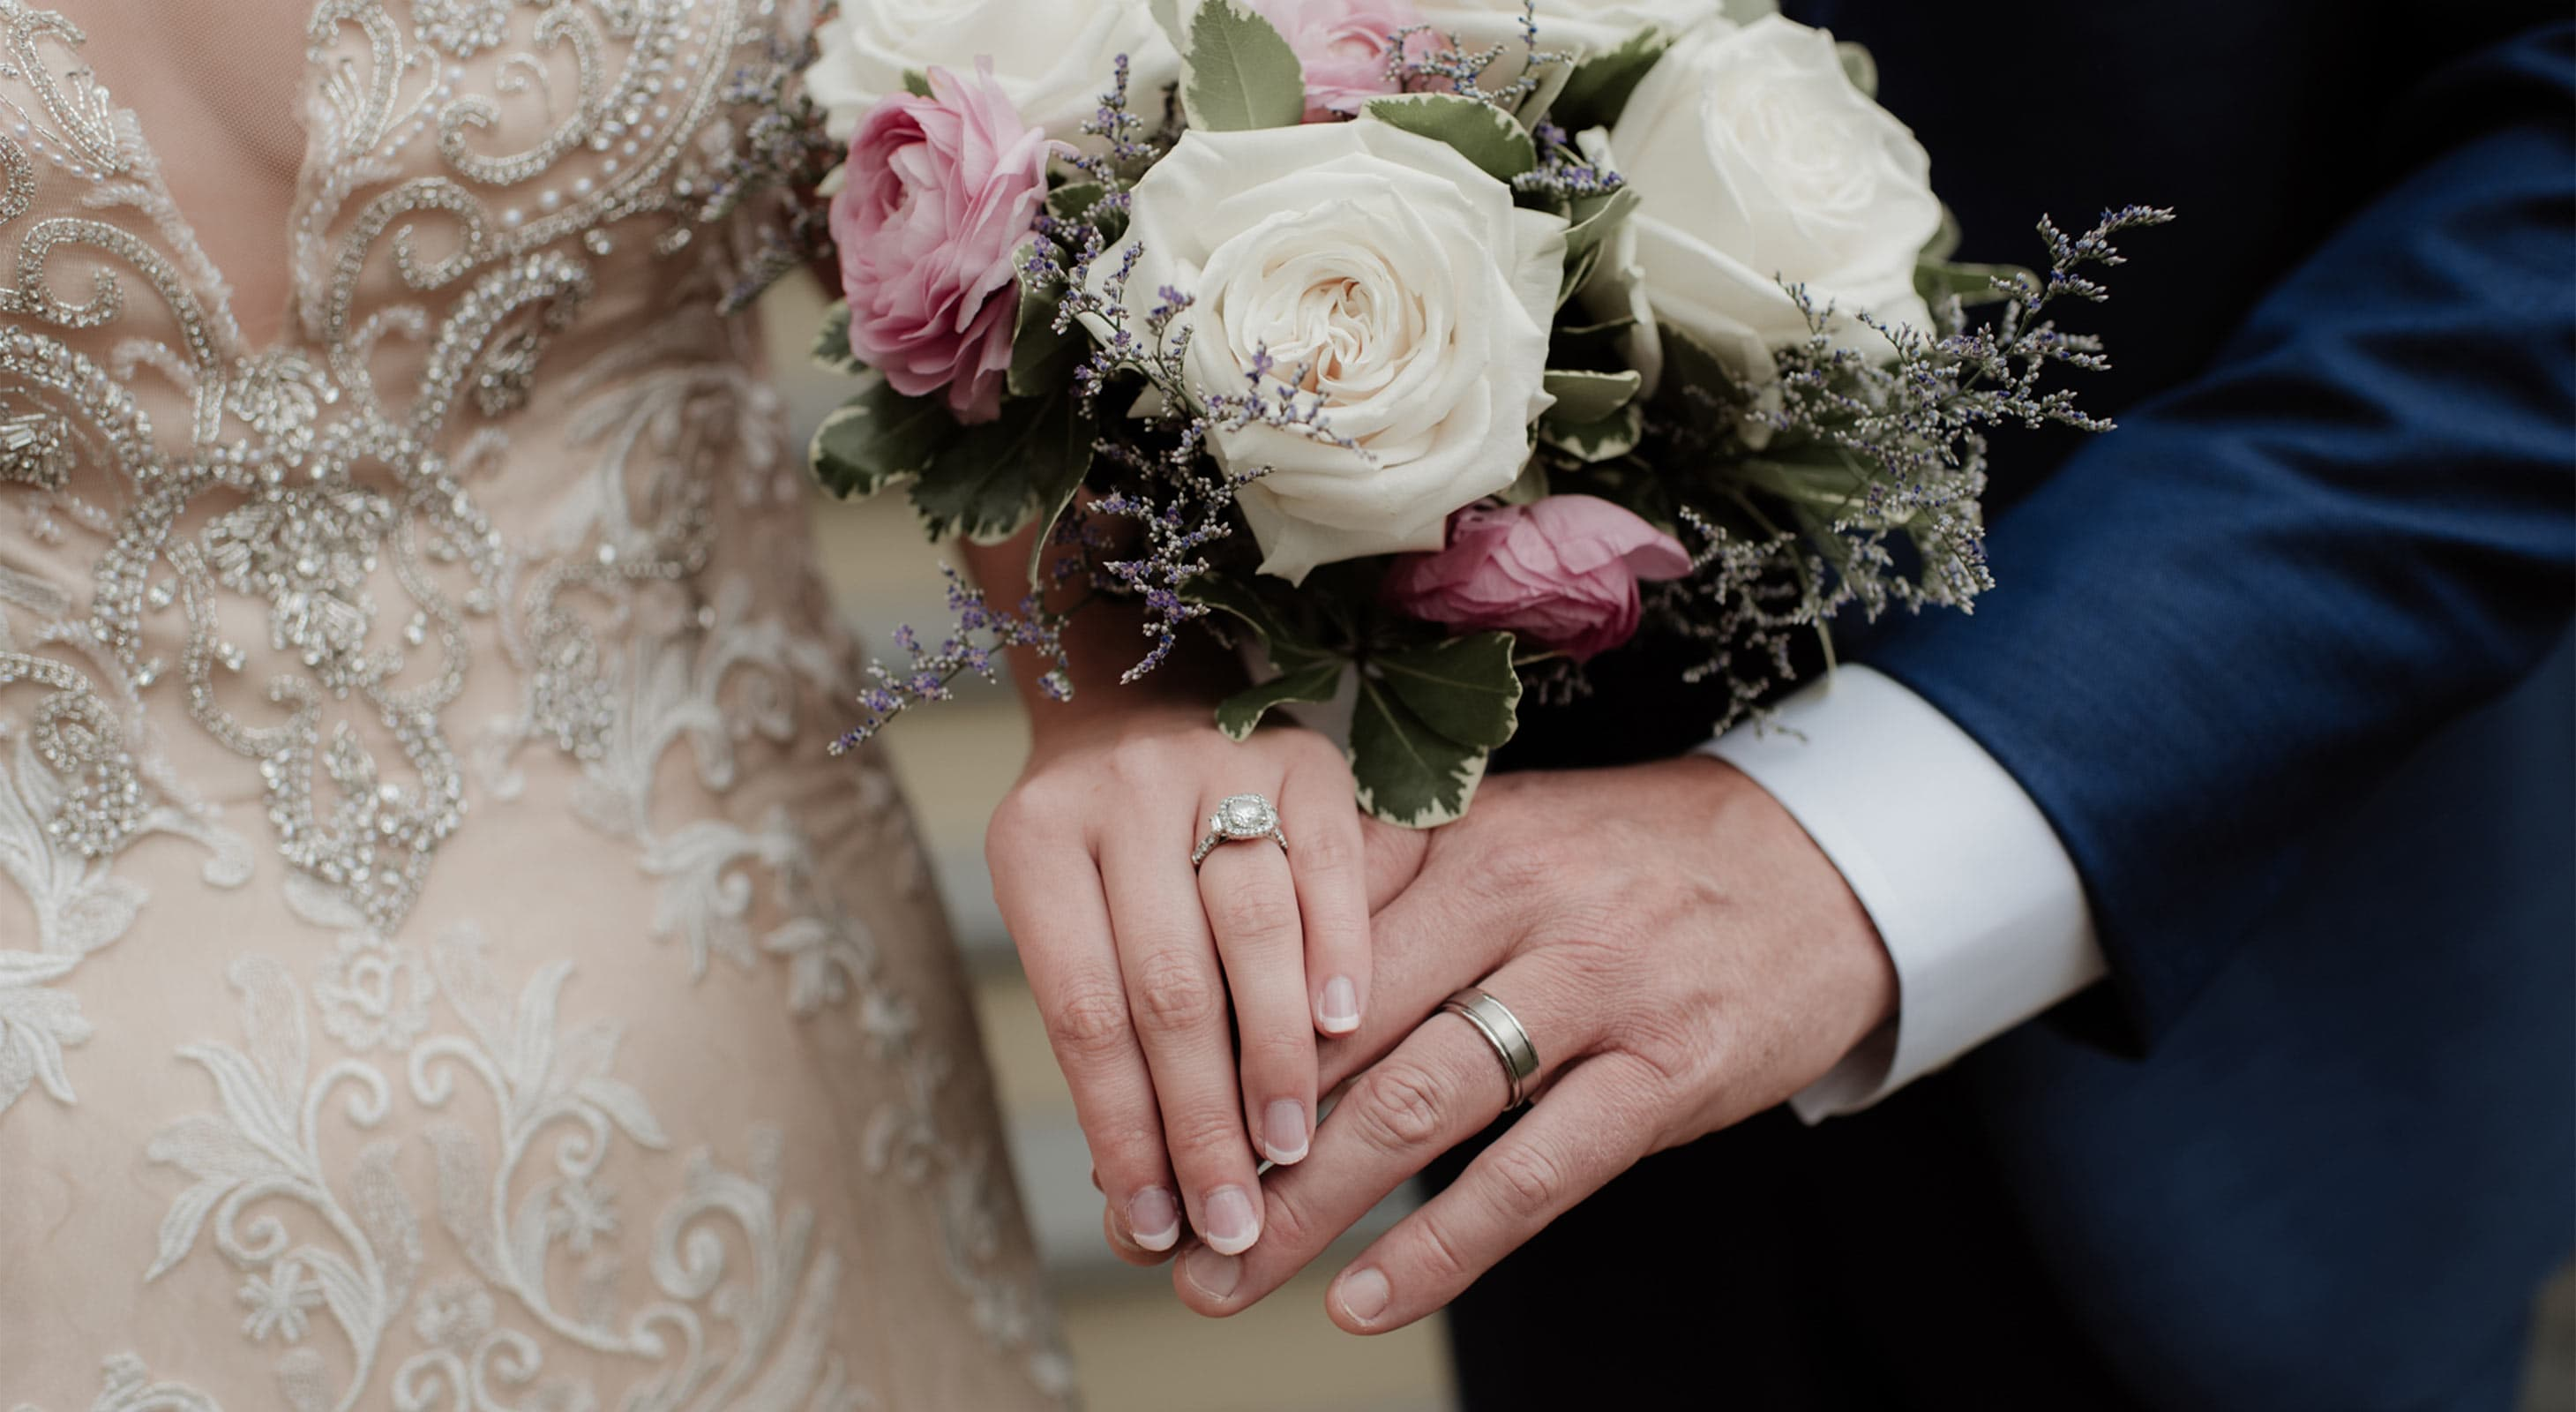 Hands of the Bride and Groom along with a flower bouquet